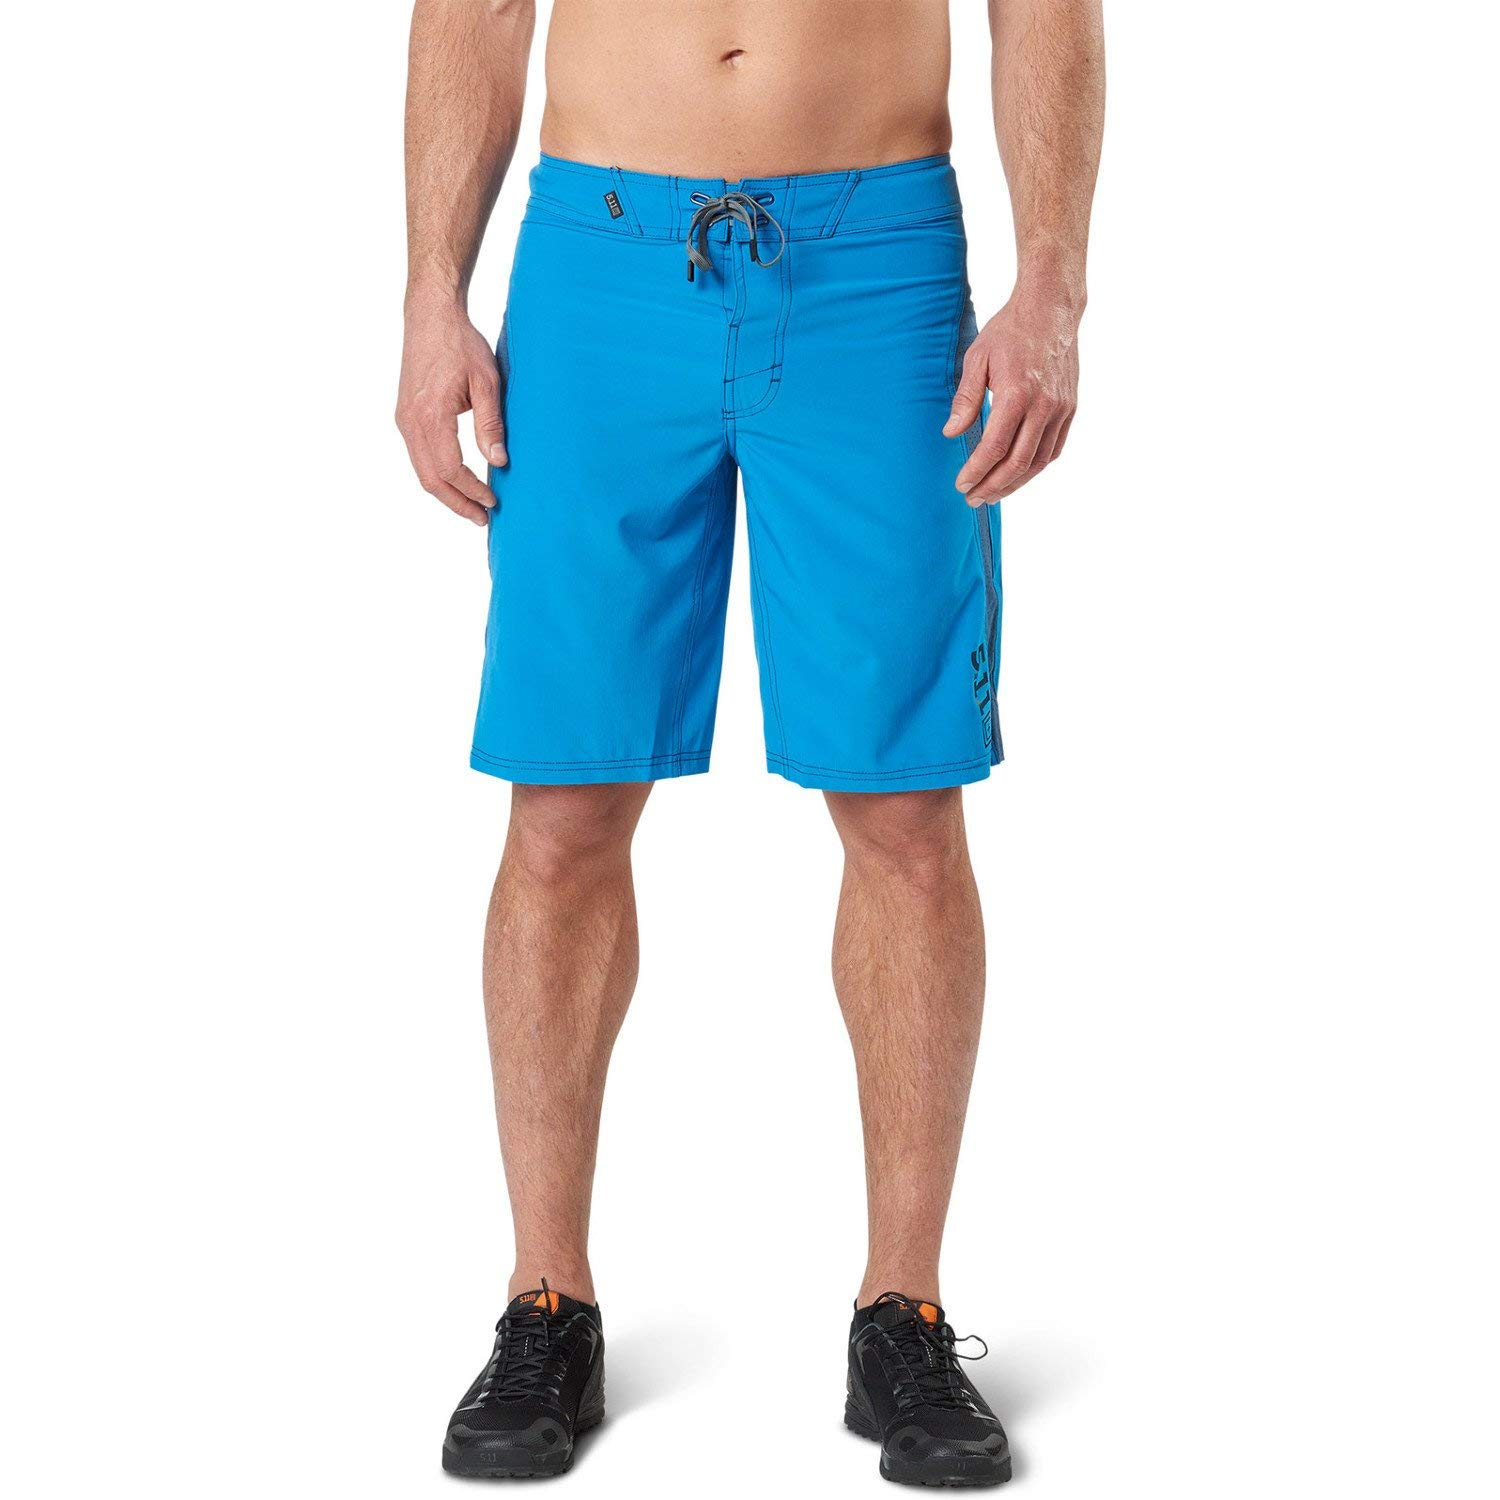 5.11 Recon Vandal Short 2.0